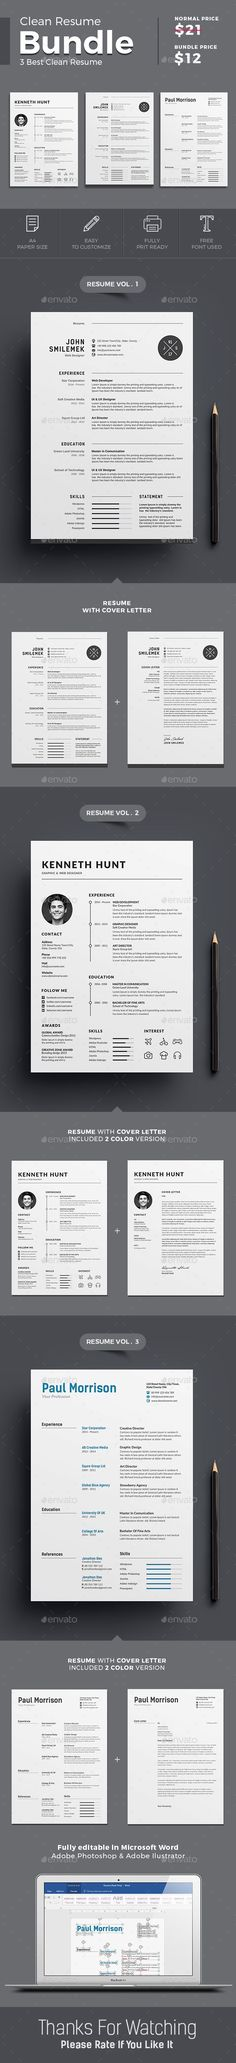 Resume Template PSD, Vector EPS, AI Illustrator, MS Word Resume - illustrator resume